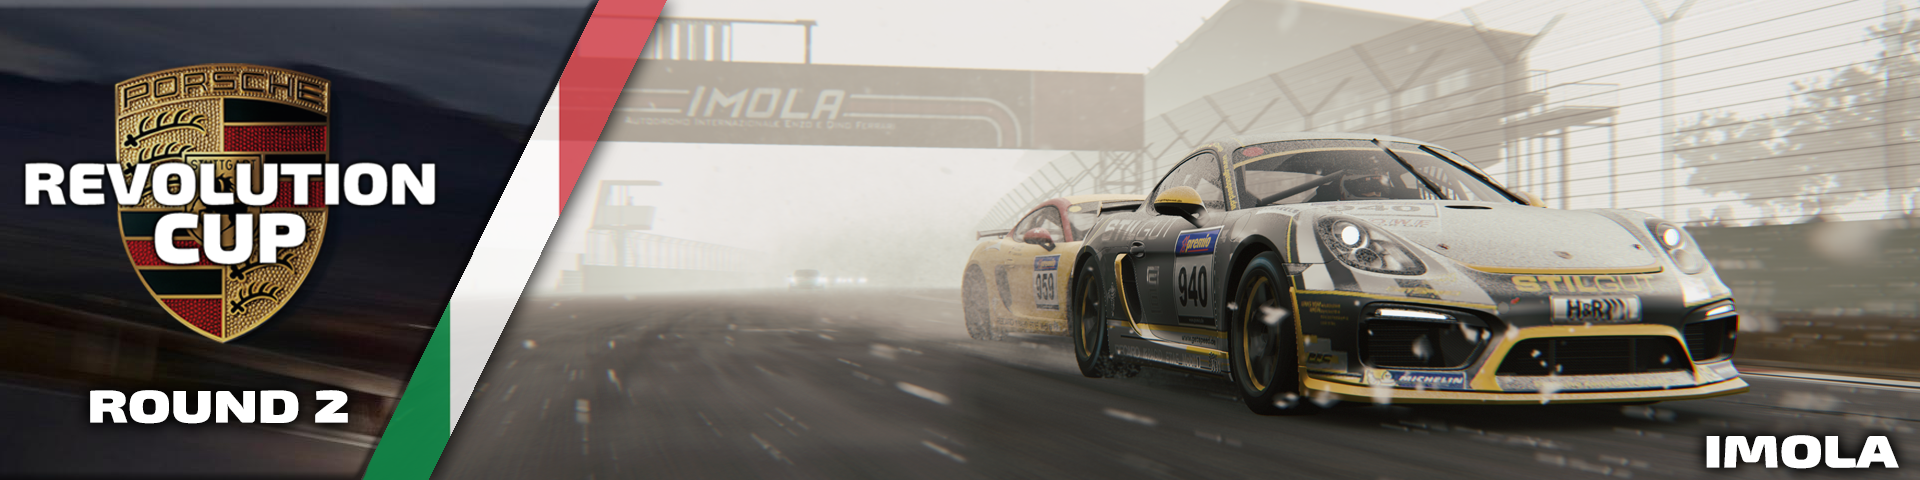 Round 2 - Imola Banner.png